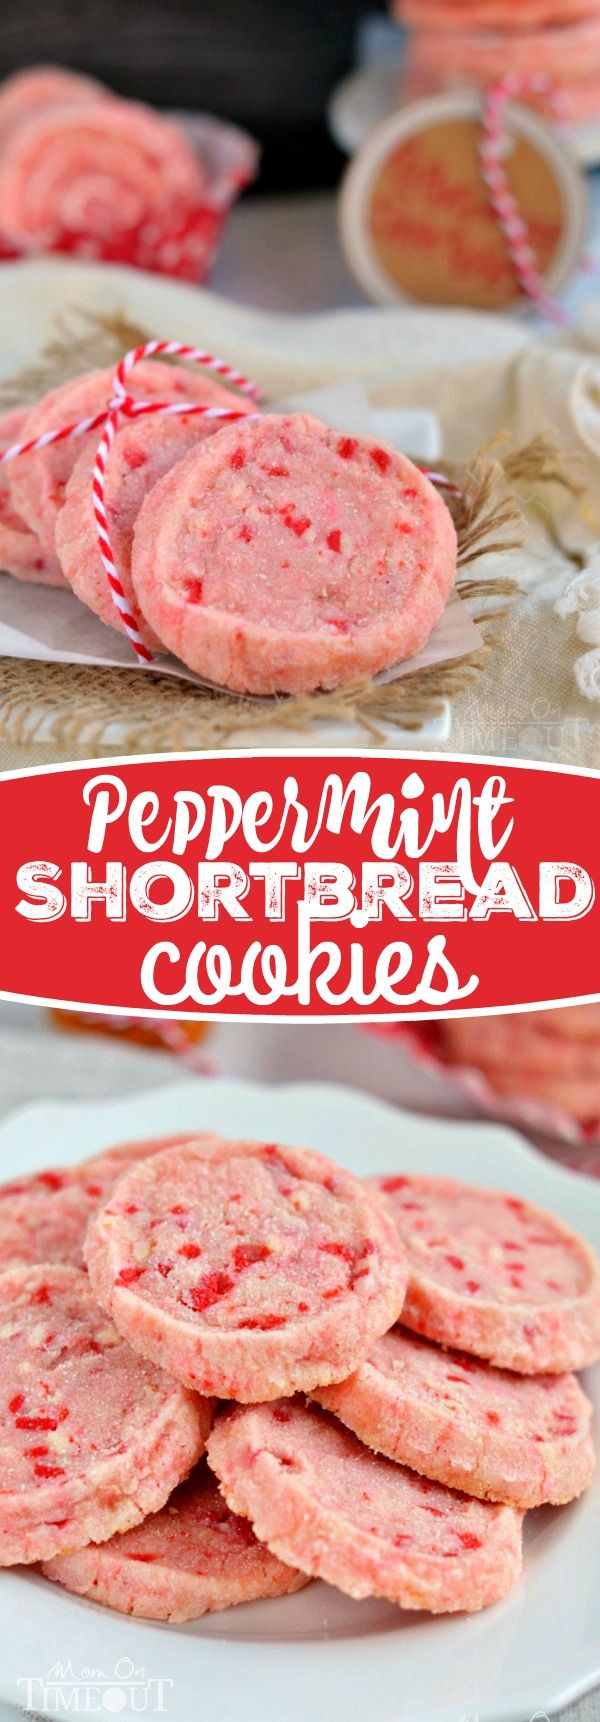 These festive Peppermint Shortbread Cookies are the perfect addition to your holiday cookie trays this year! With only five ingredients, they are quick and easy to make and look so gosh darn pretty! // Mom On Timeout